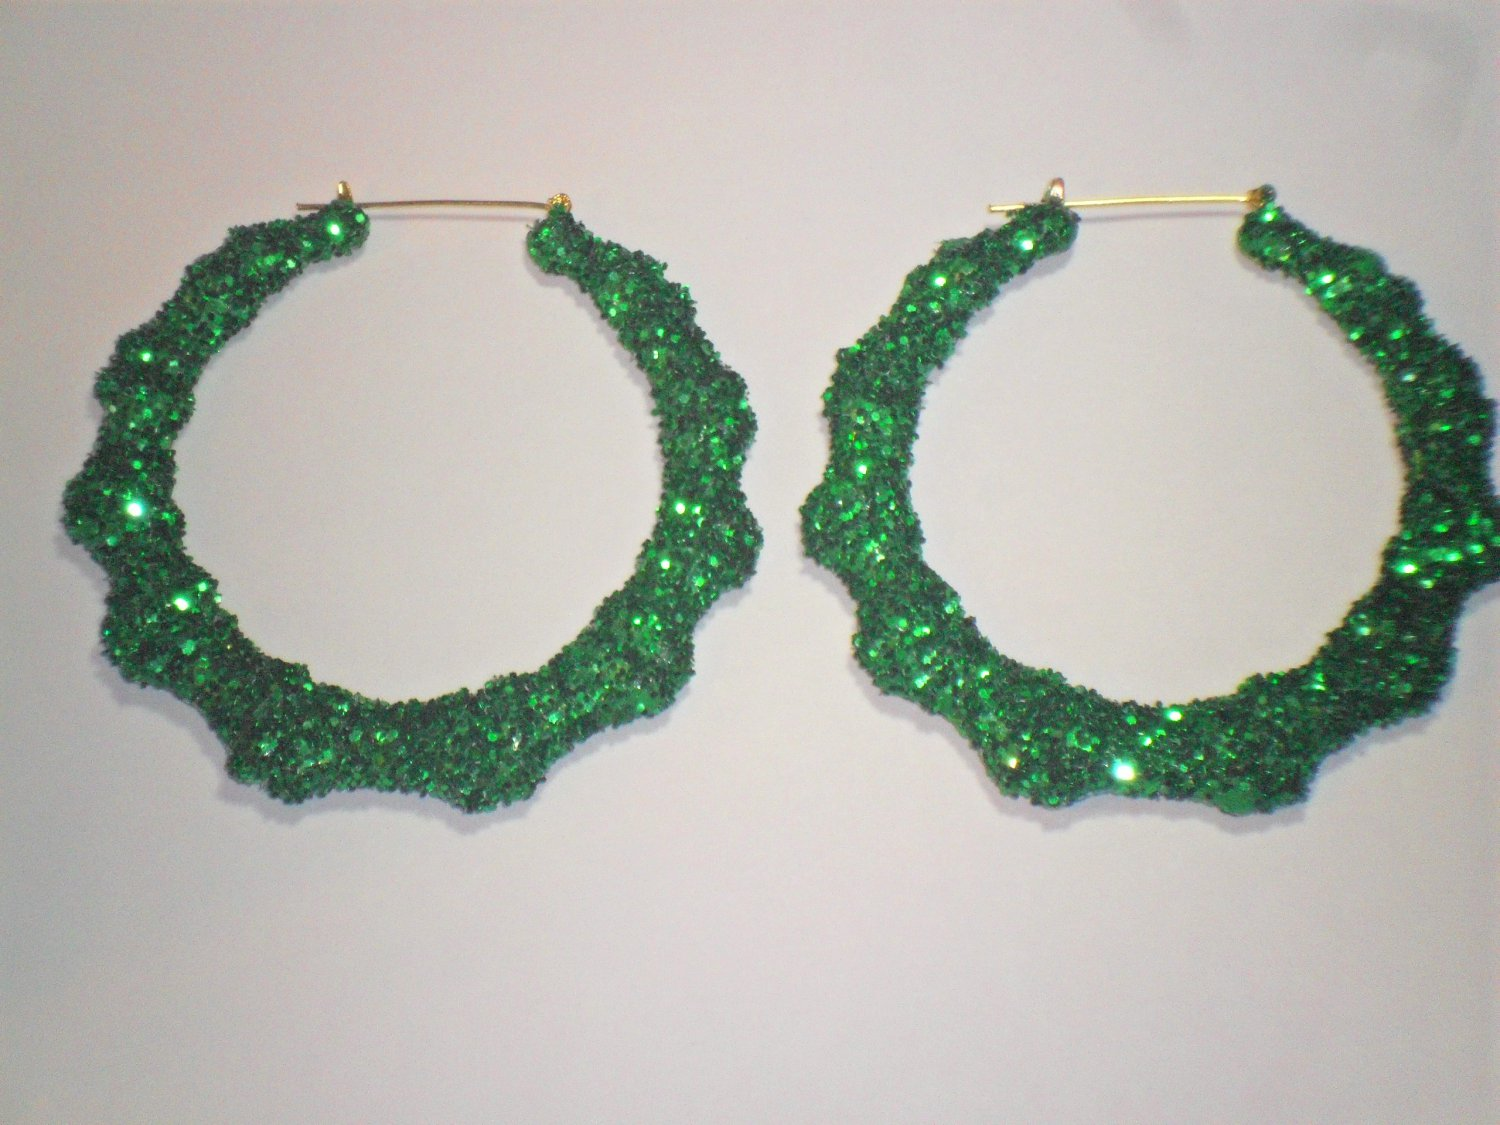 Bamboo Hoop Bling Bling Earrings Green Buy 1 Get 1 Free Mix or Match